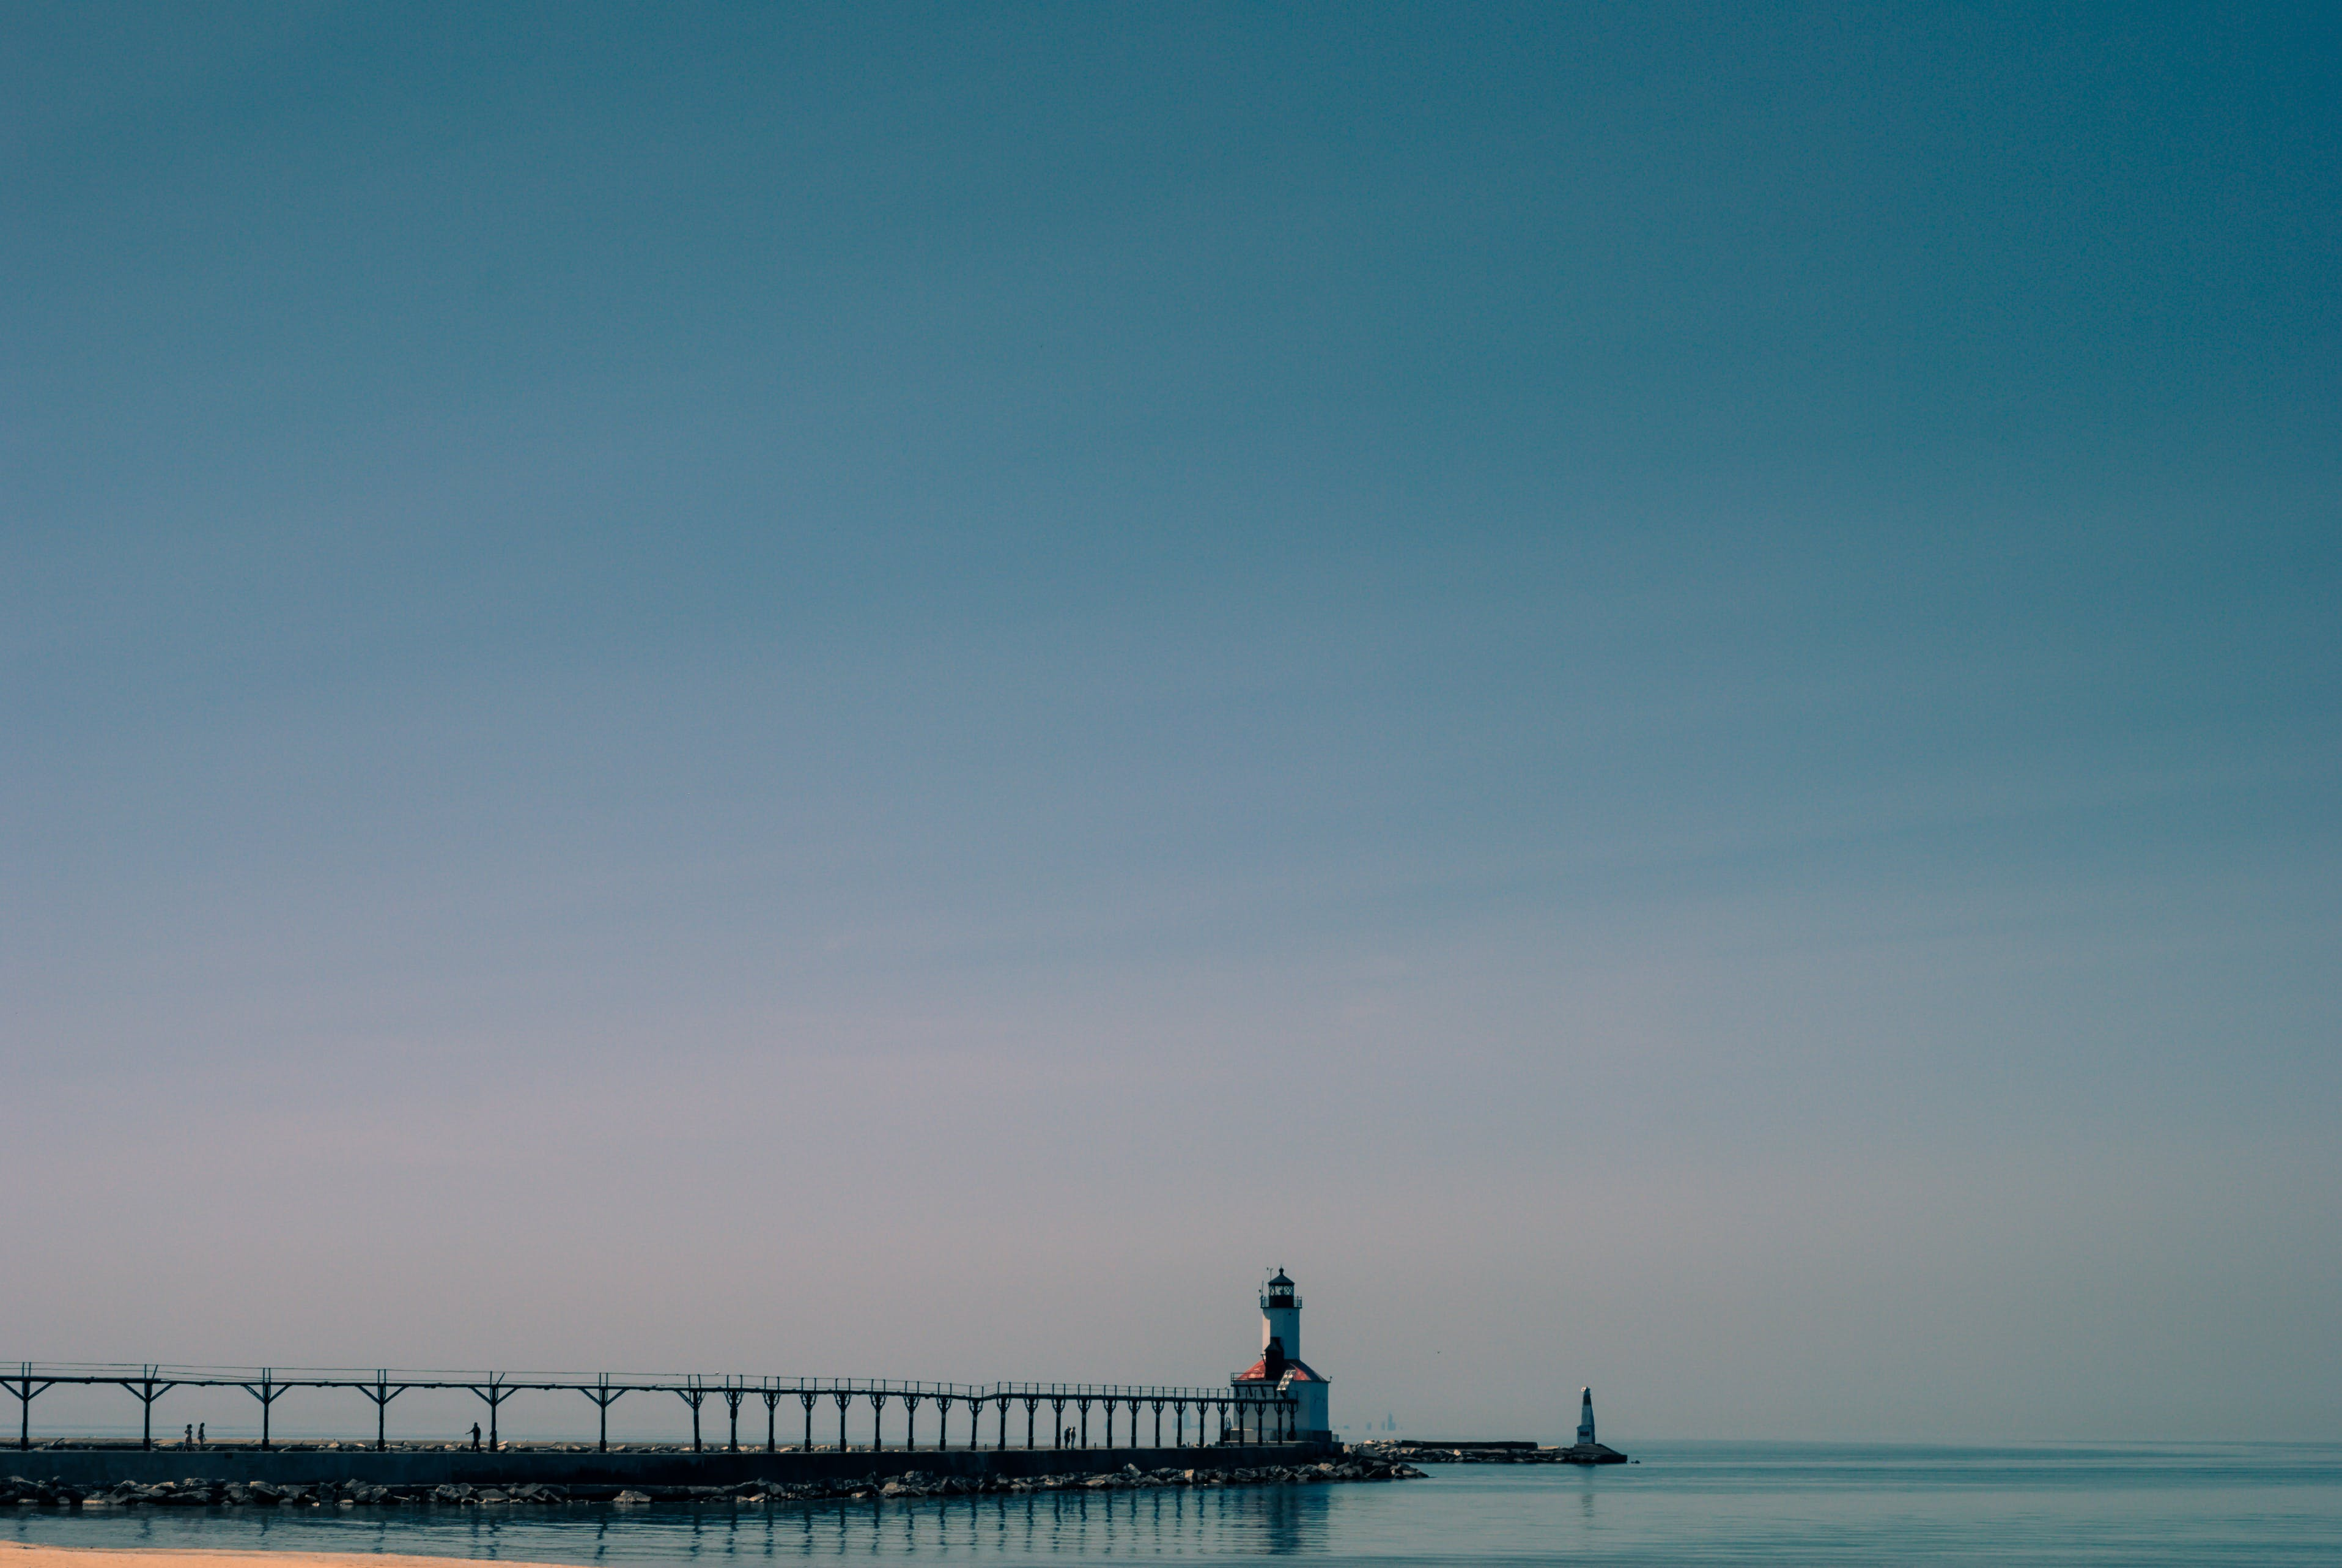 Dock Near White and Brown Concrete Lighthouse Surrounded by Calm Body of Water